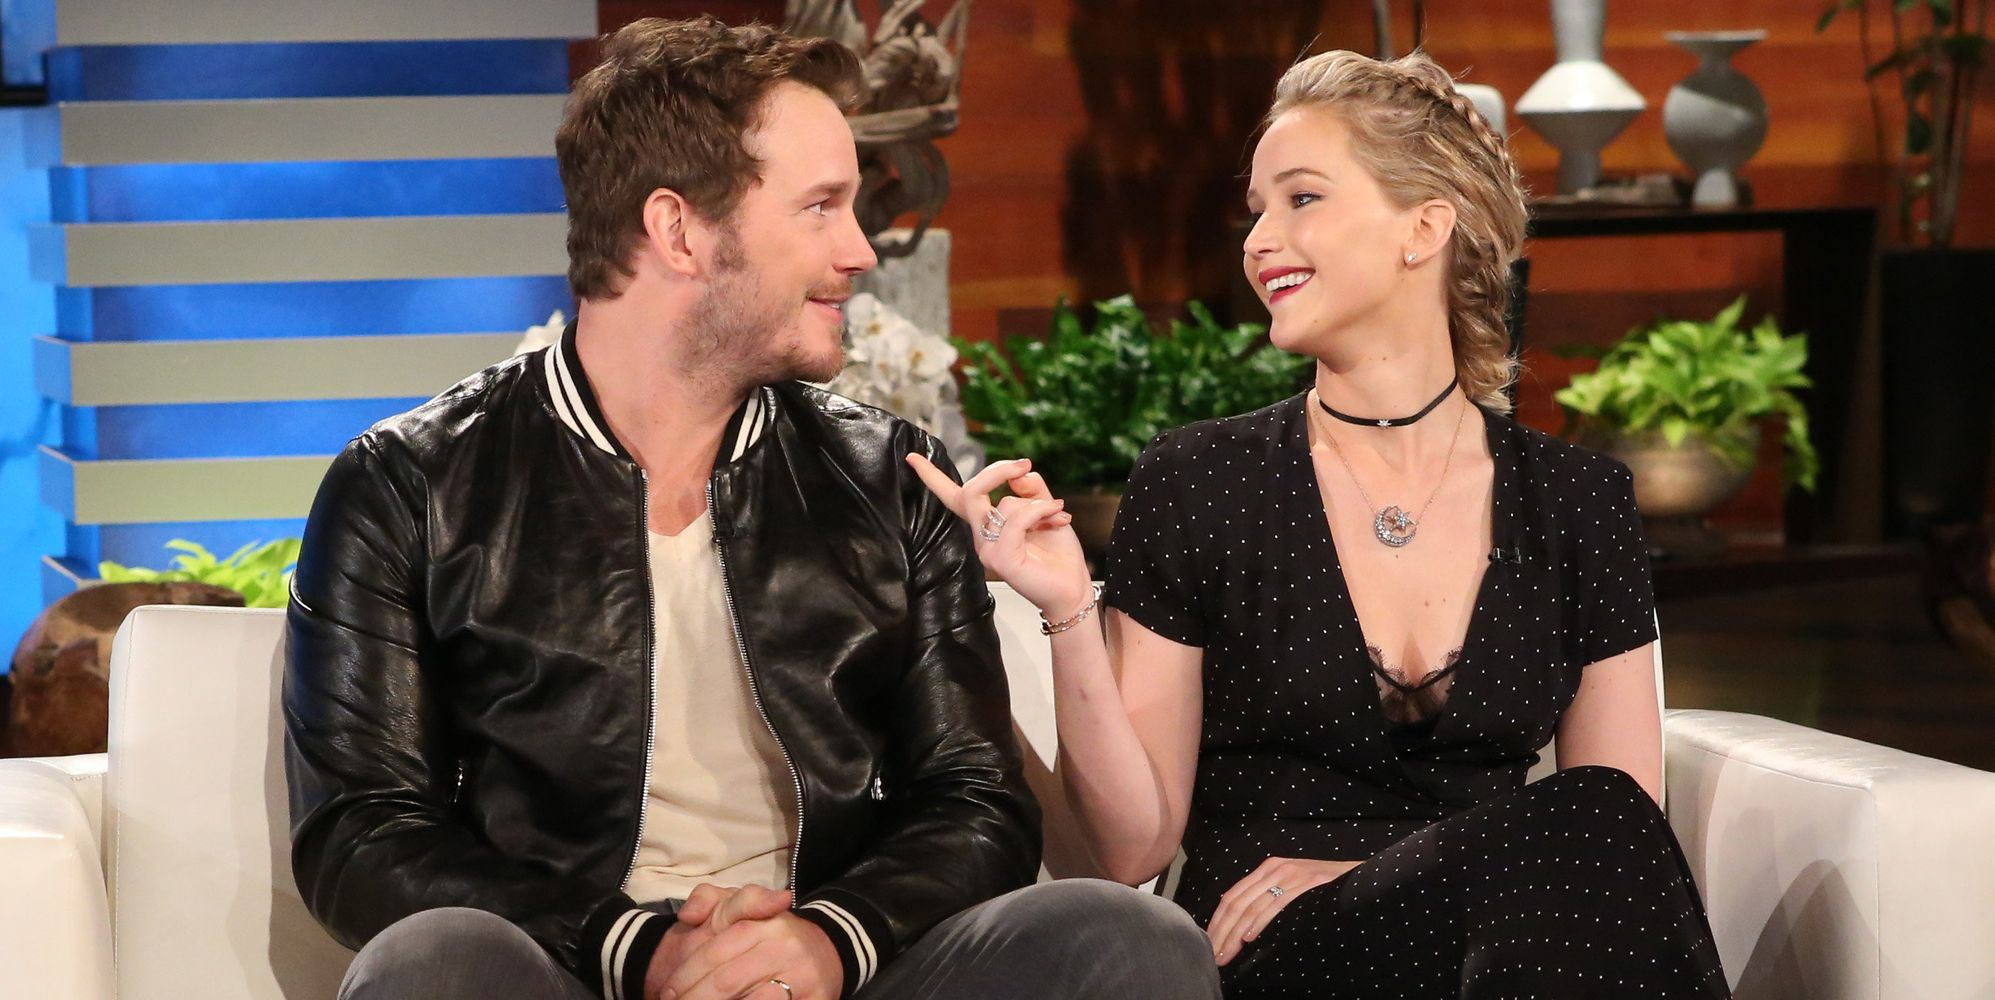 Jennifer Lawrence And Chris Pratt Reveal Their Favorite Body Parts On